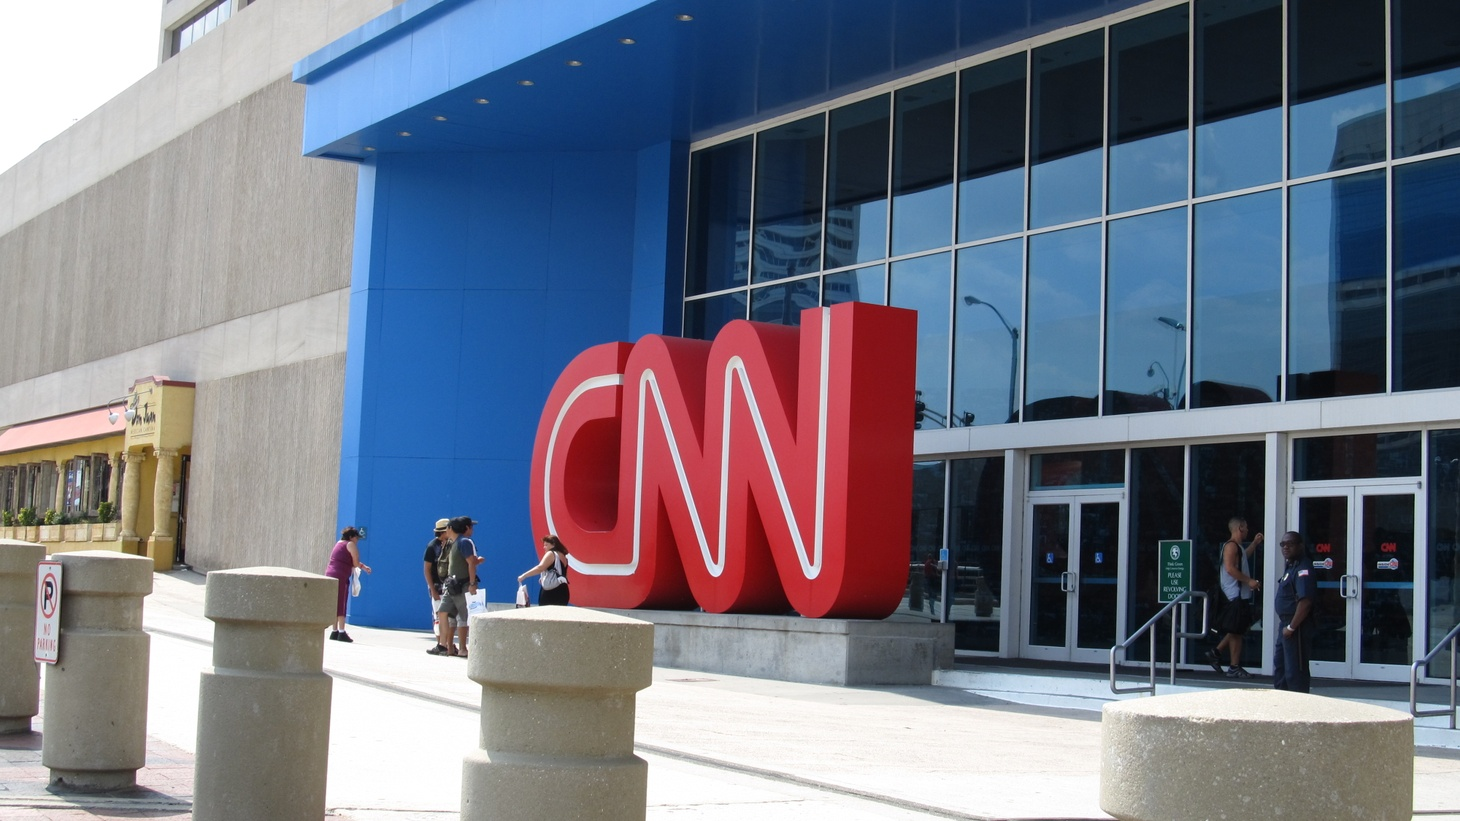 CNN, which usually trails Fox News in ratings, came in first in cable news ratings on Nov. 4, the second day of election coverage.